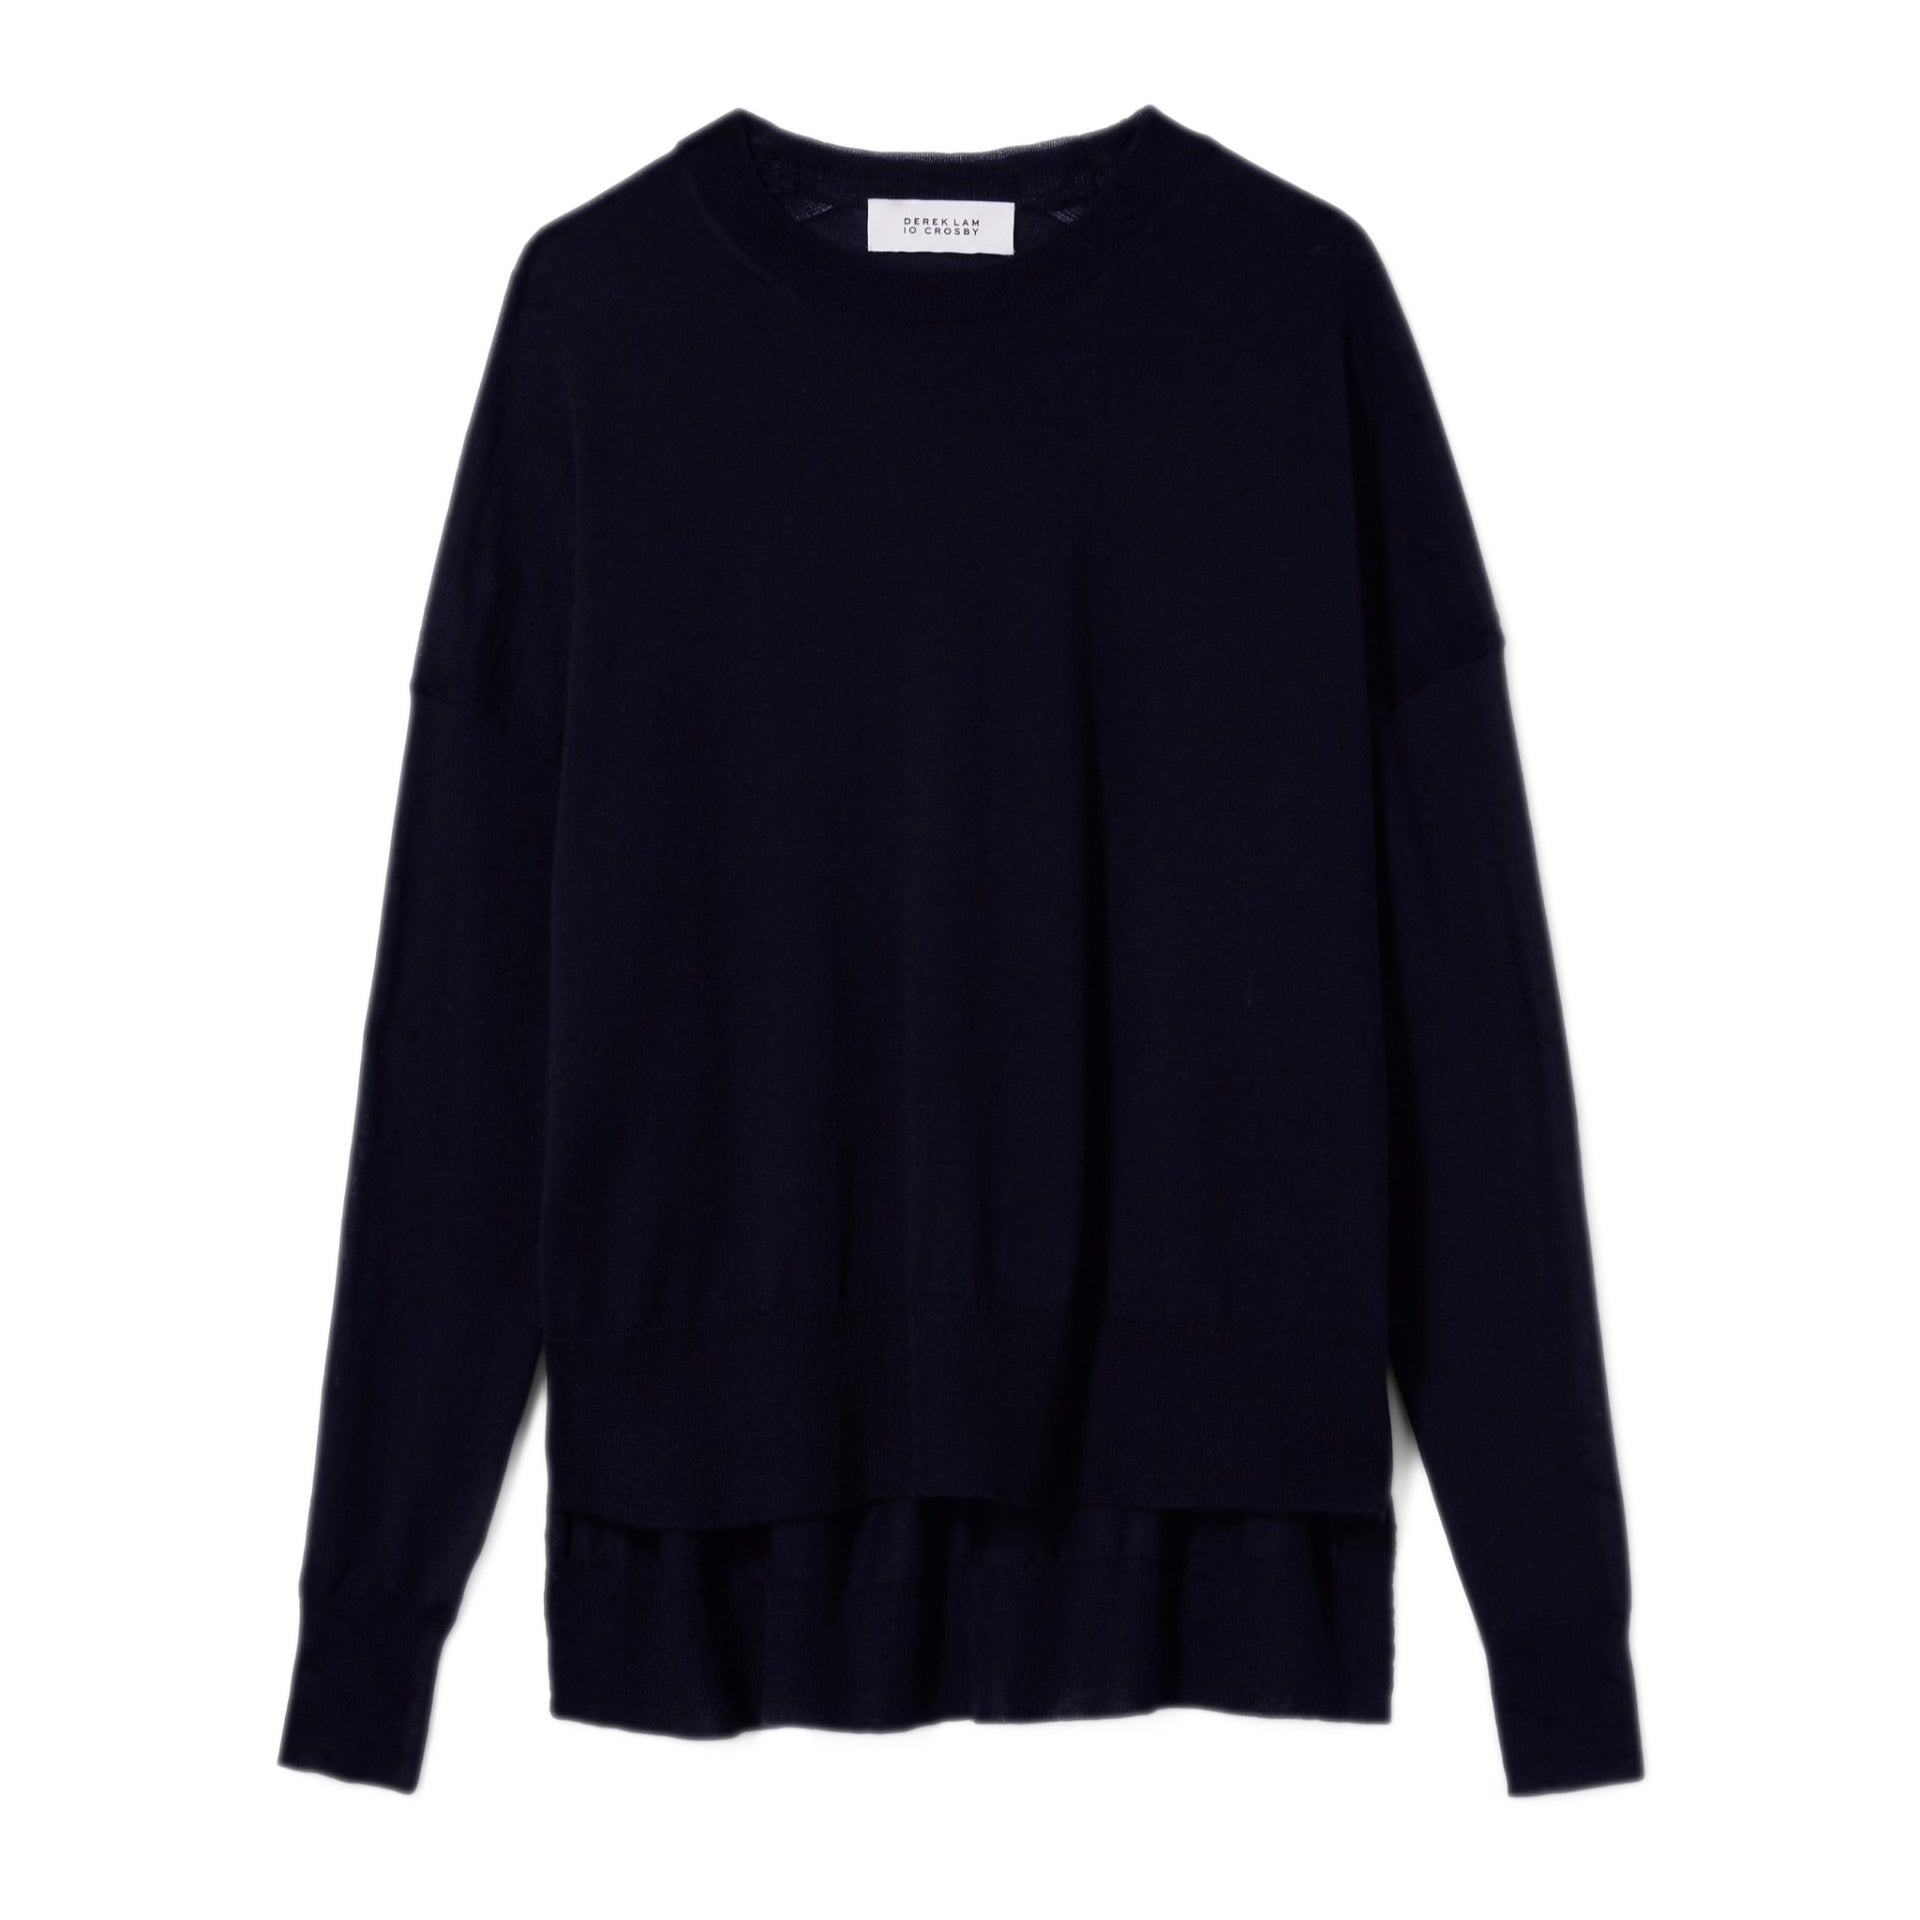 Mullholland Boxy Crewneck Sweater- Navy